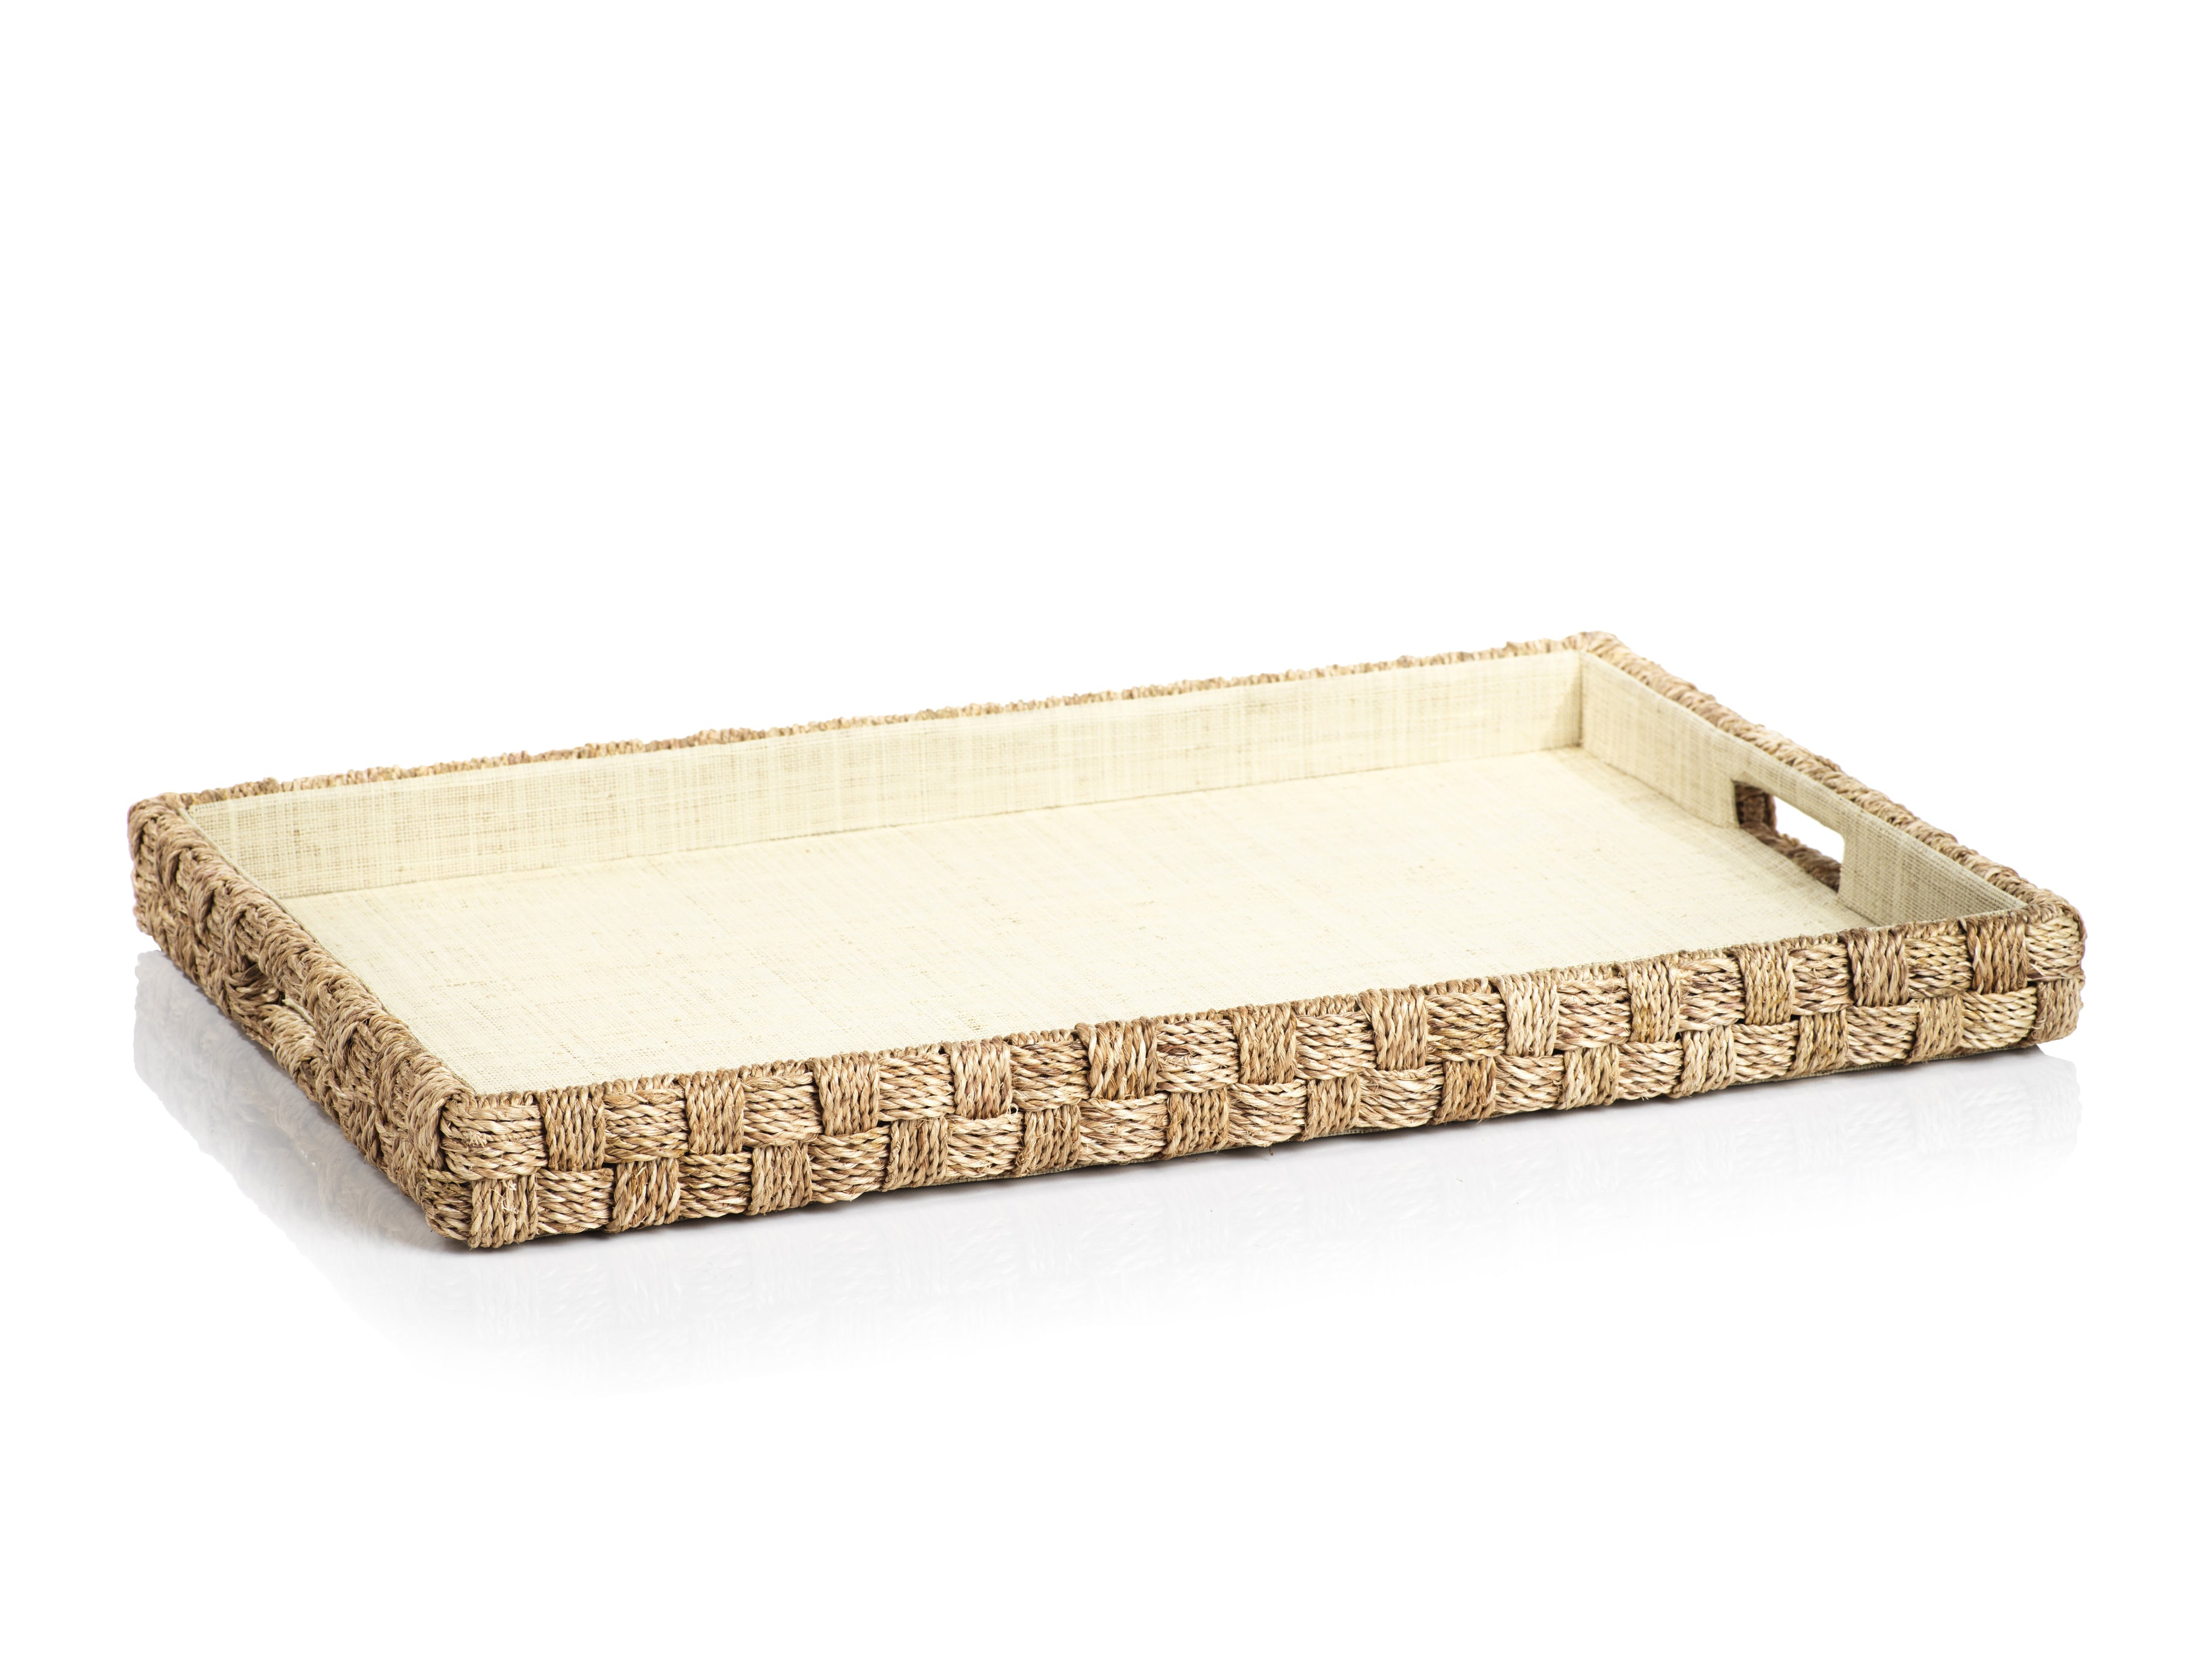 Abaca Rope Serving Tray - CARLYLE AVENUE